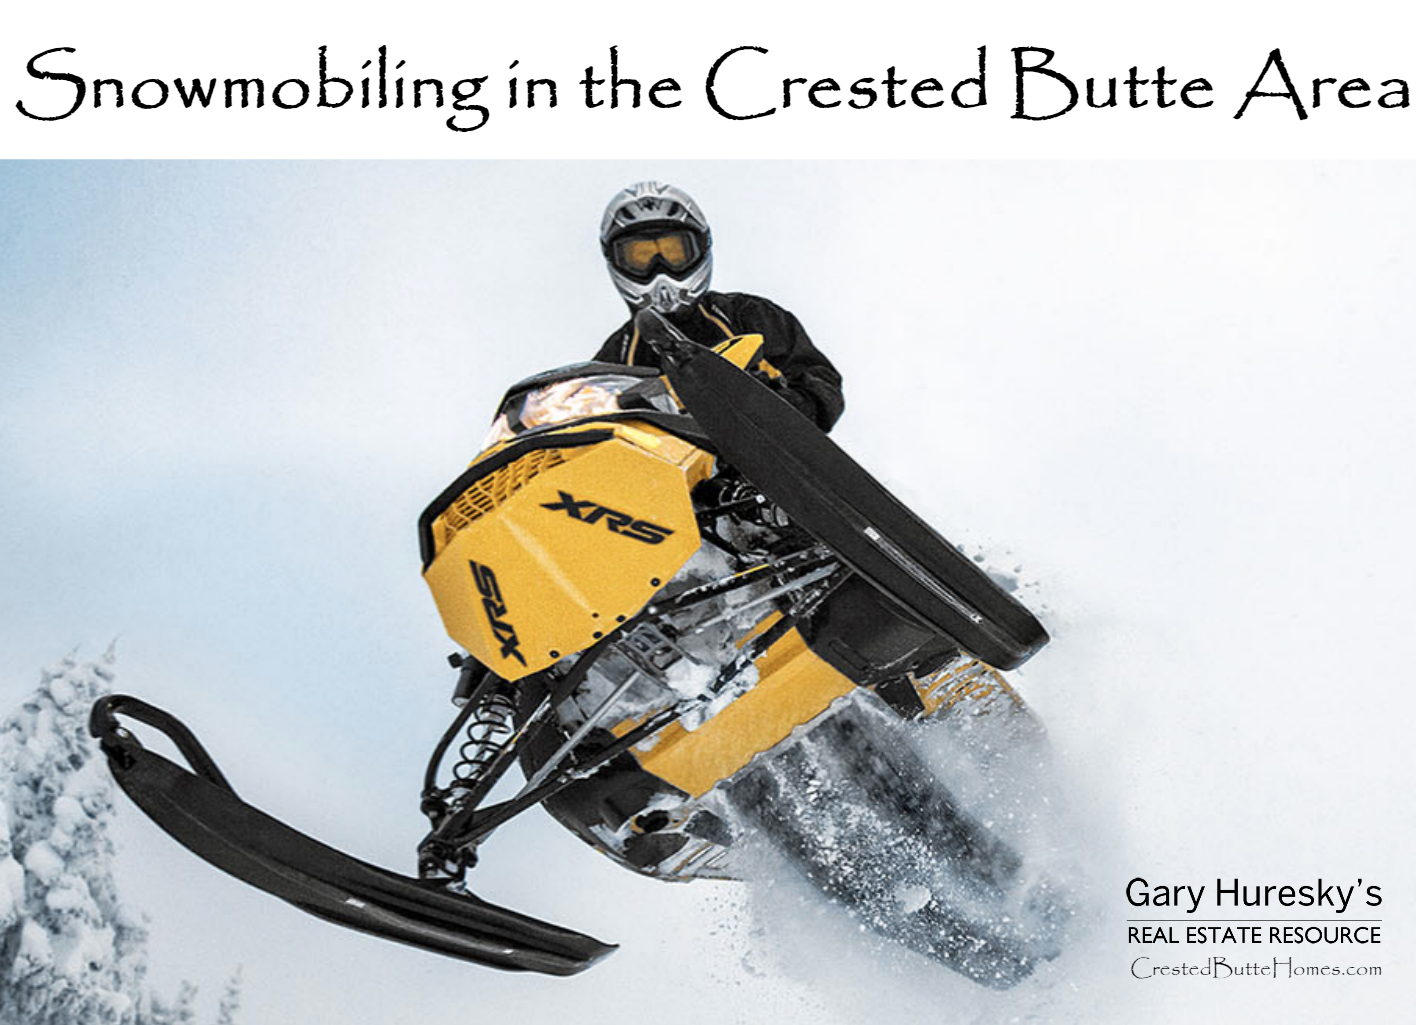 crested-butte-snowmobile-cover